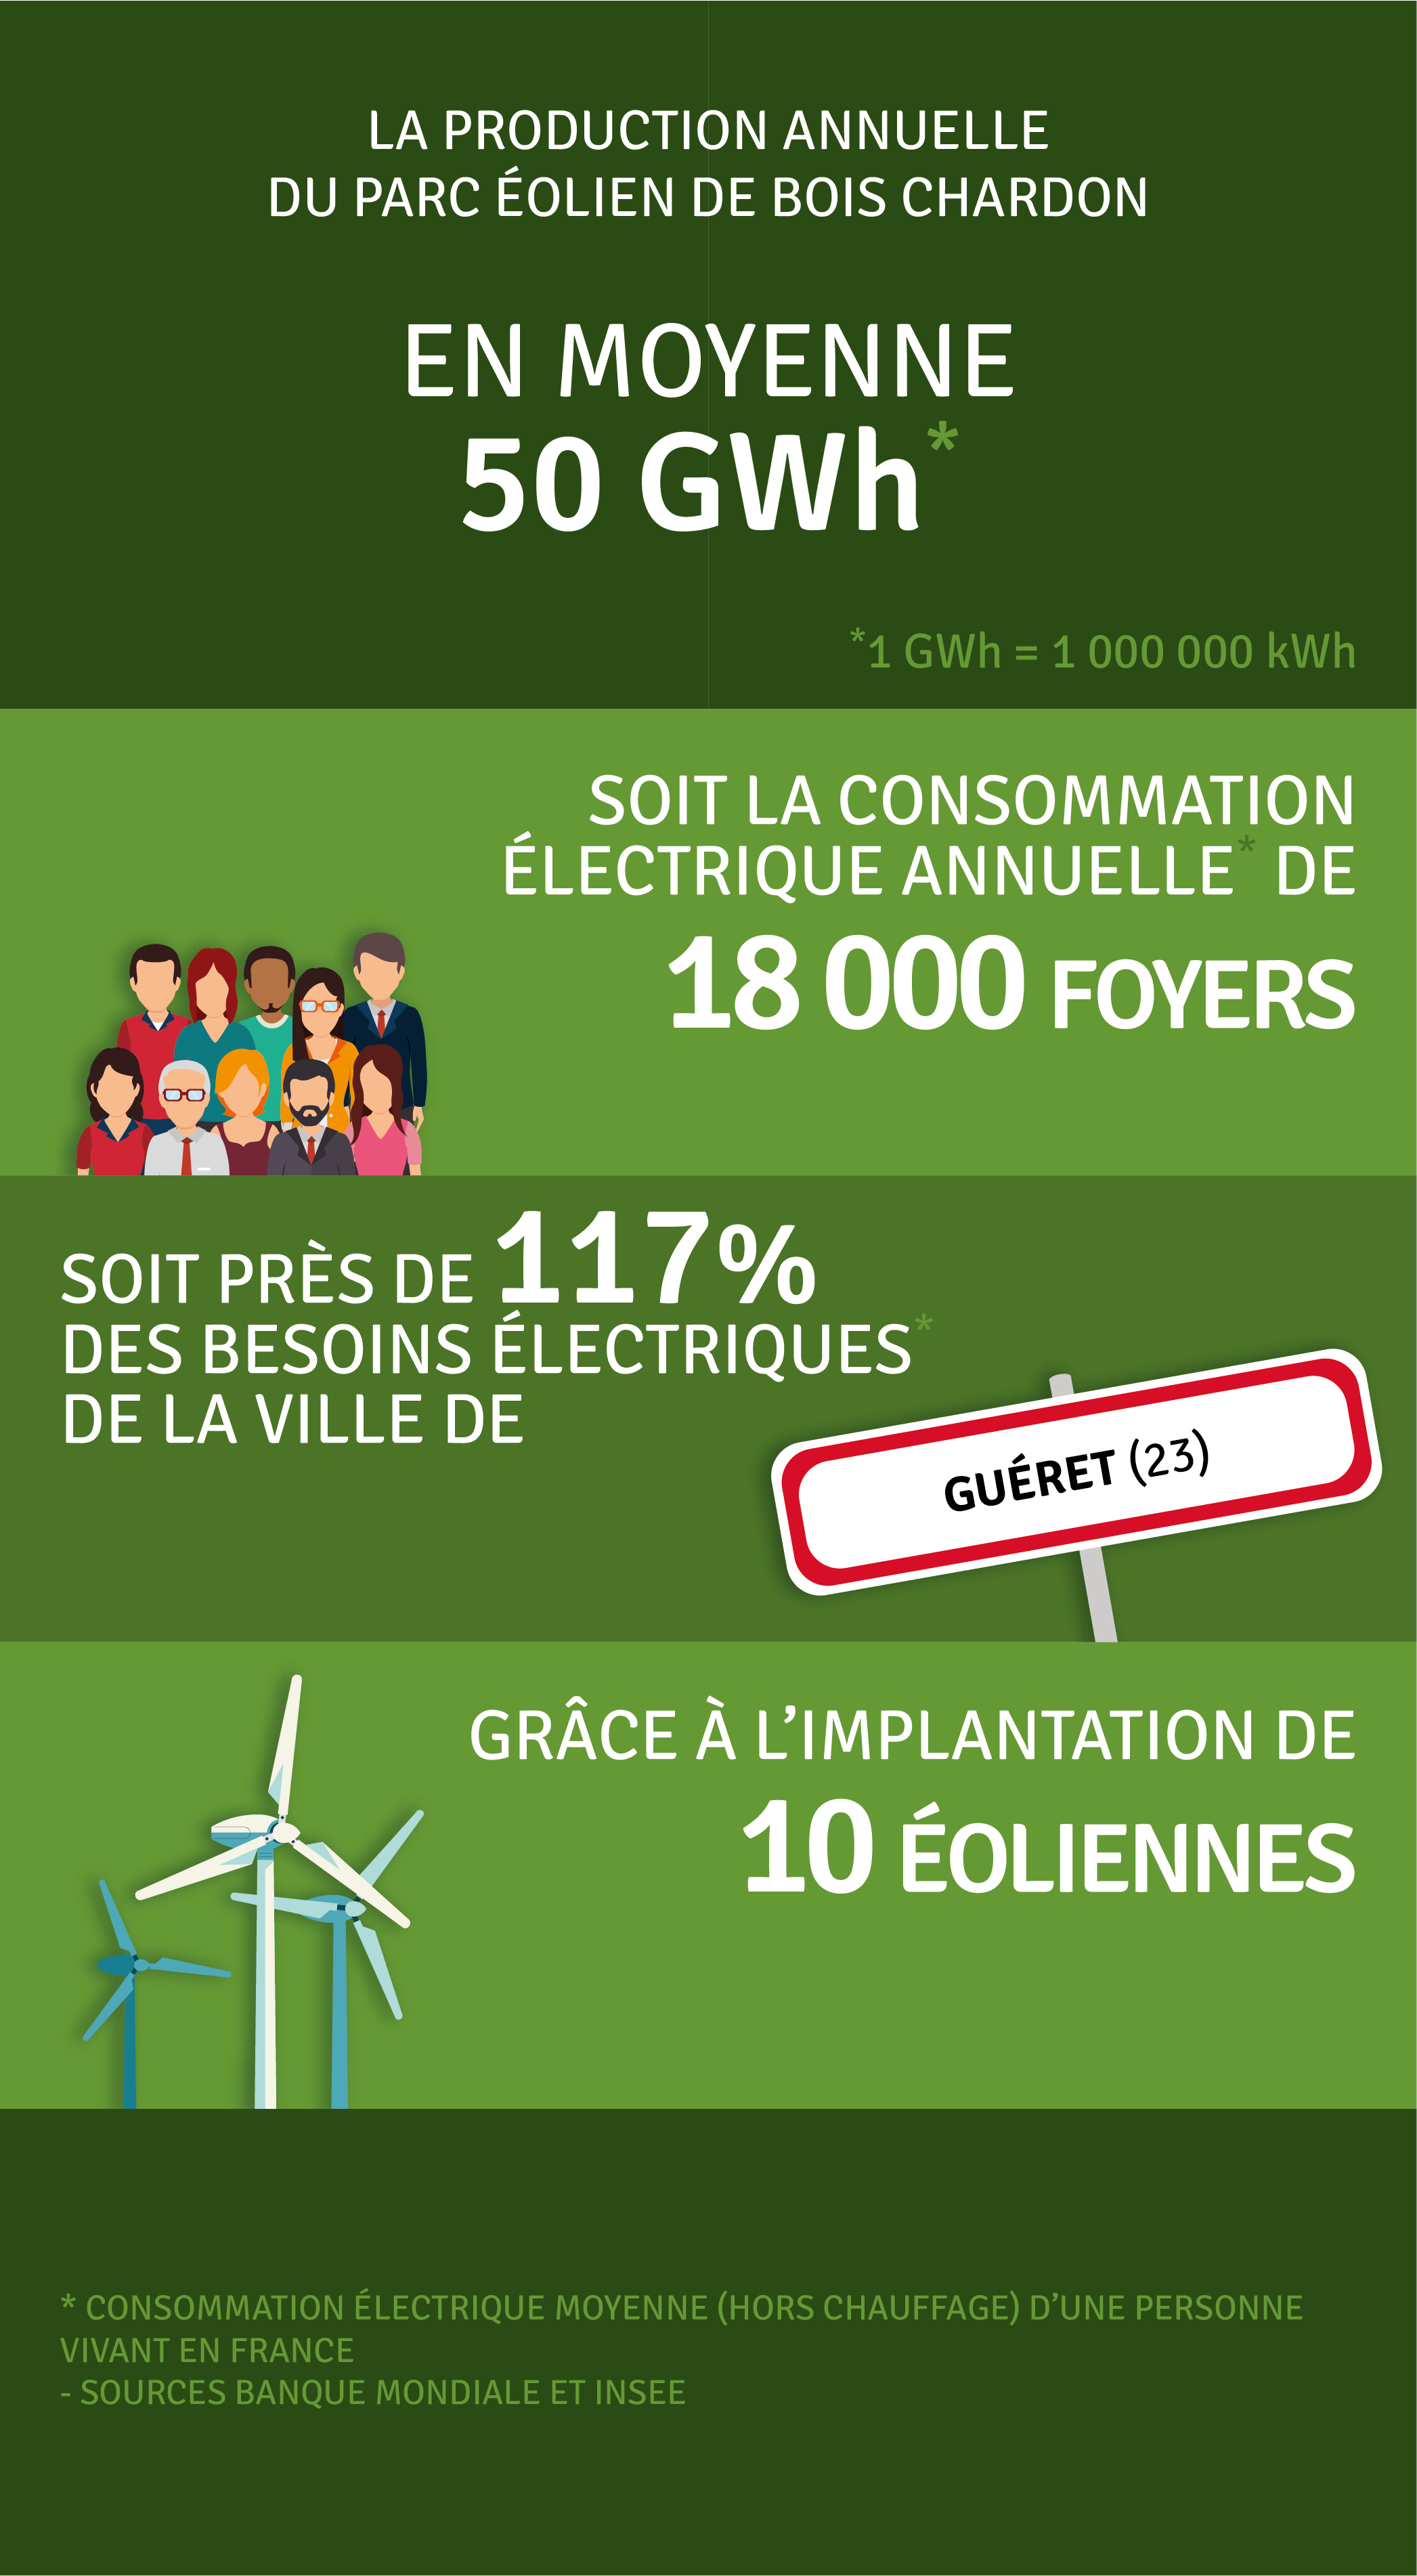 Production annuelle 50 000 000 kWh